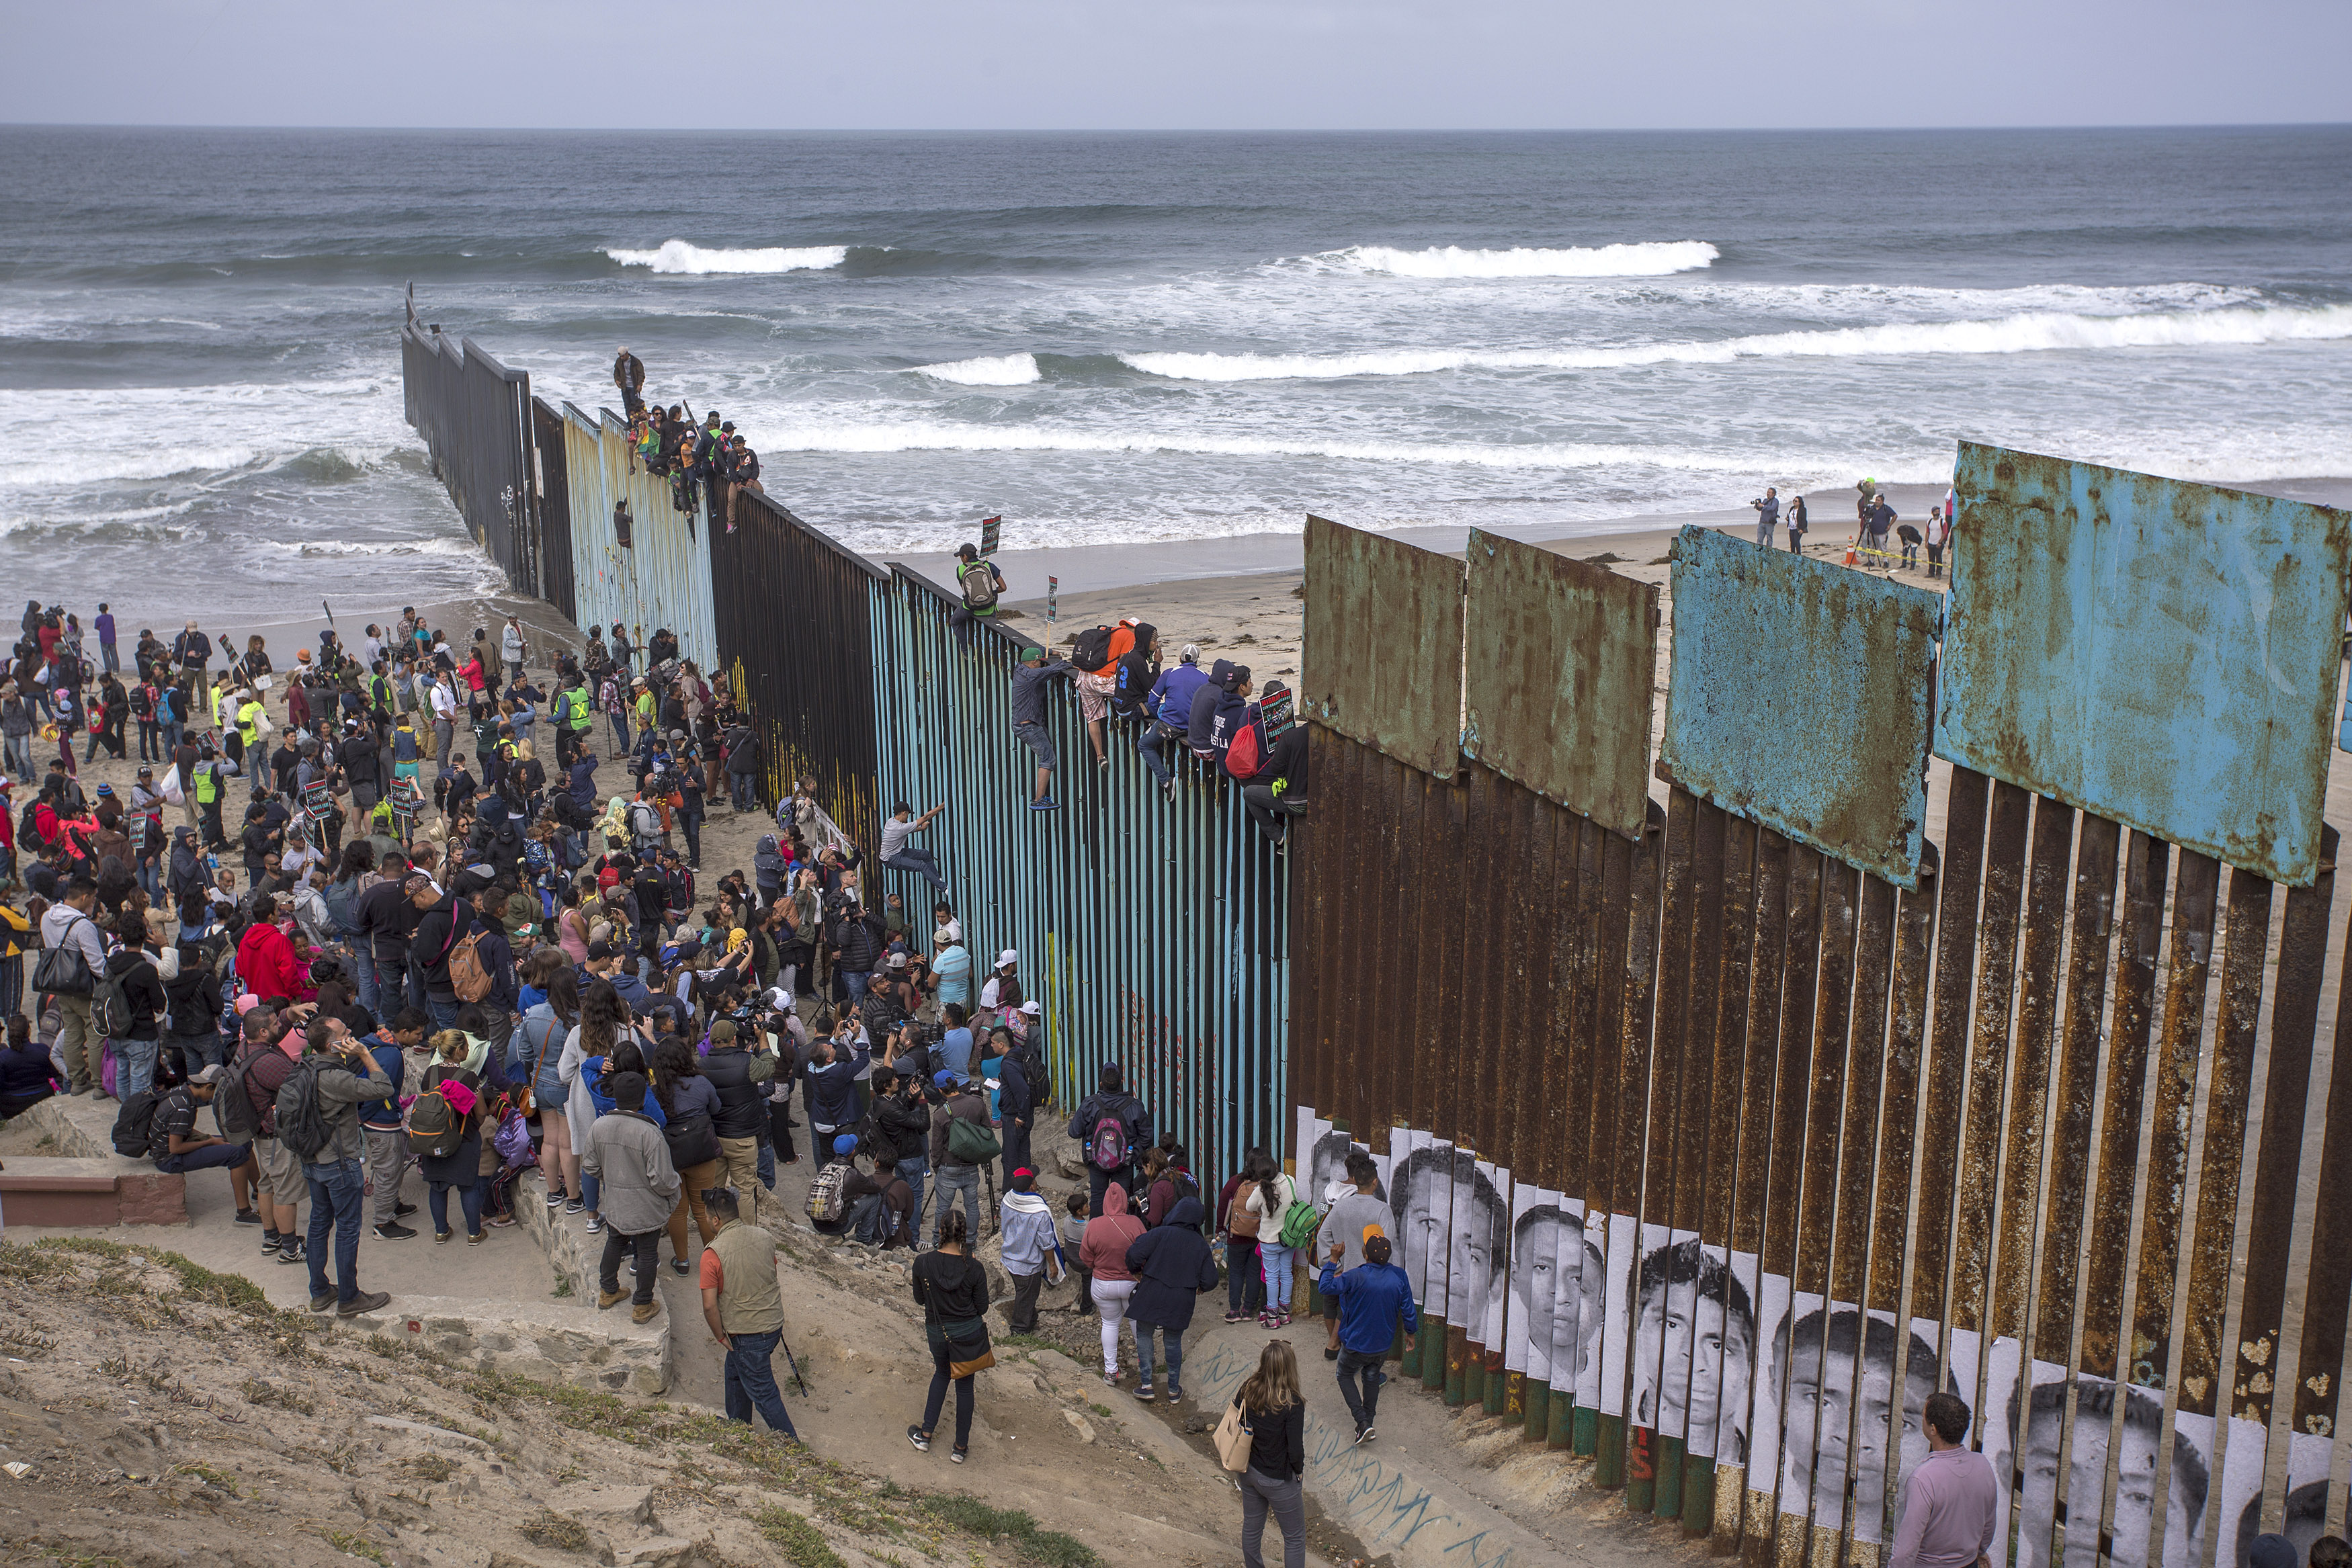 People climb a section of border fence to look into the U.S. as members of a caravan of Central American asylum seekers arrive to a rally on April 29, 2018 in Tijuana, Baja California Norte, Mexico.